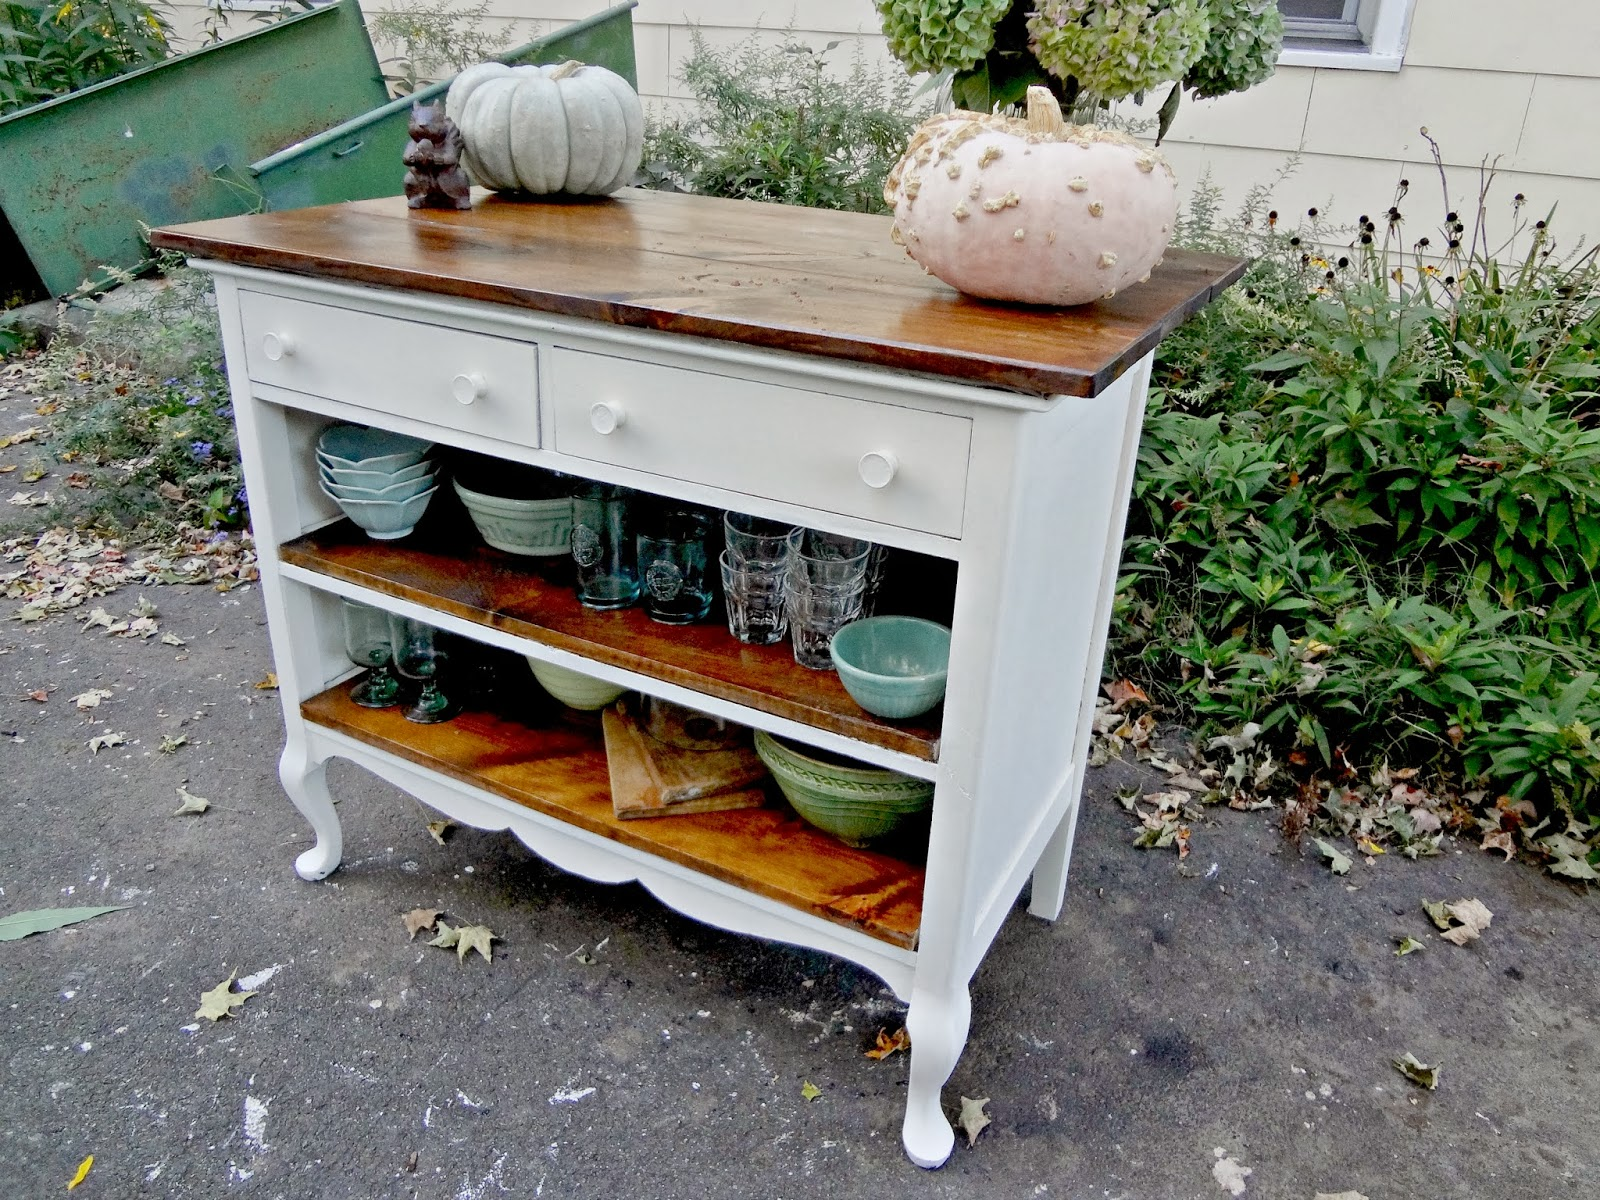 Heir and Space Antique Dresser Turned Kitchen Island